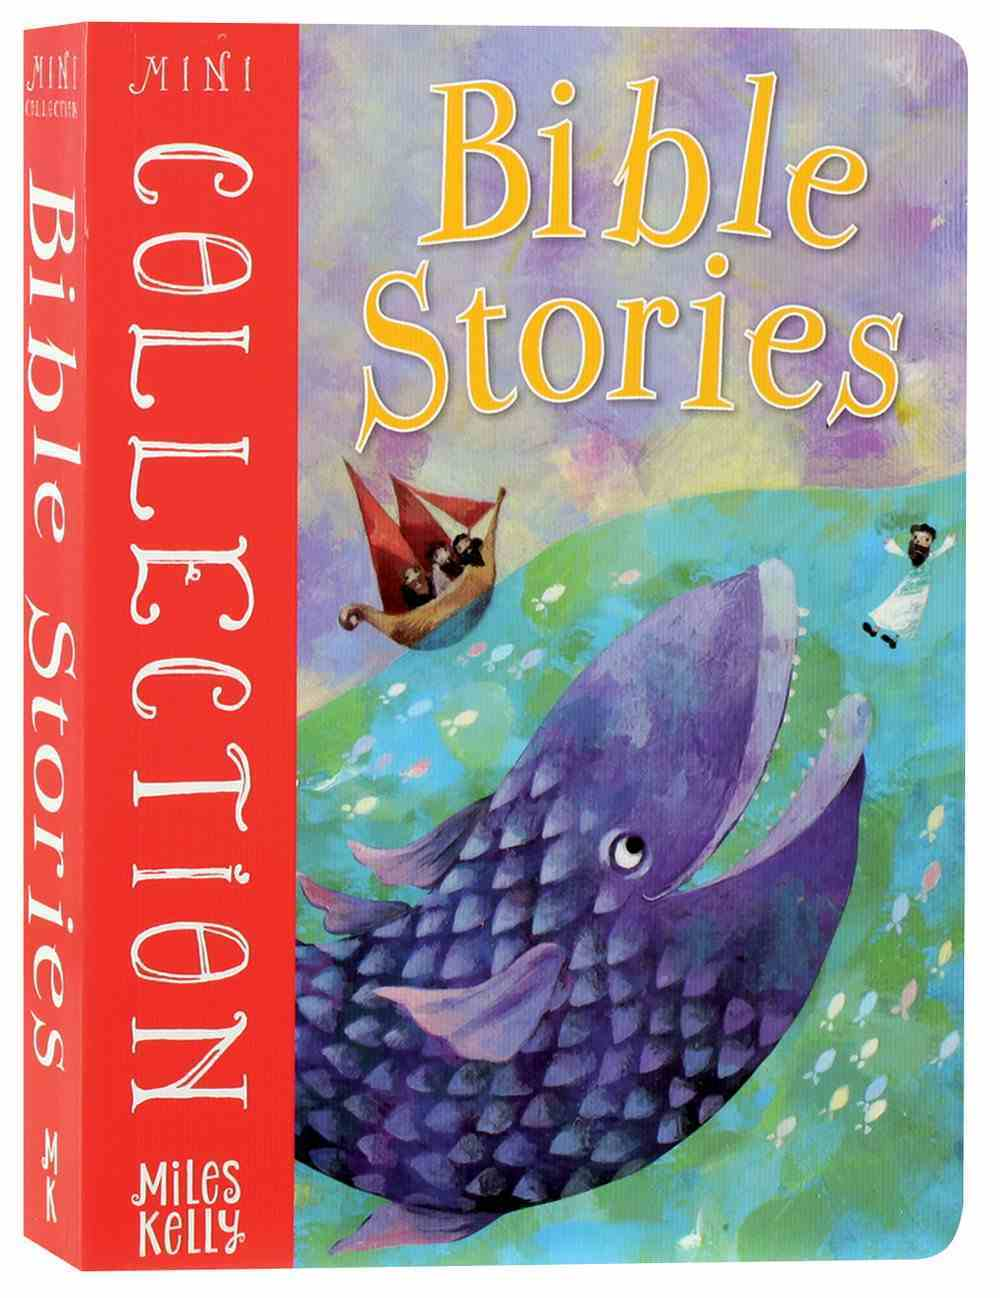 Image result for Bible Stories: Mini Collection by Miles Kelly